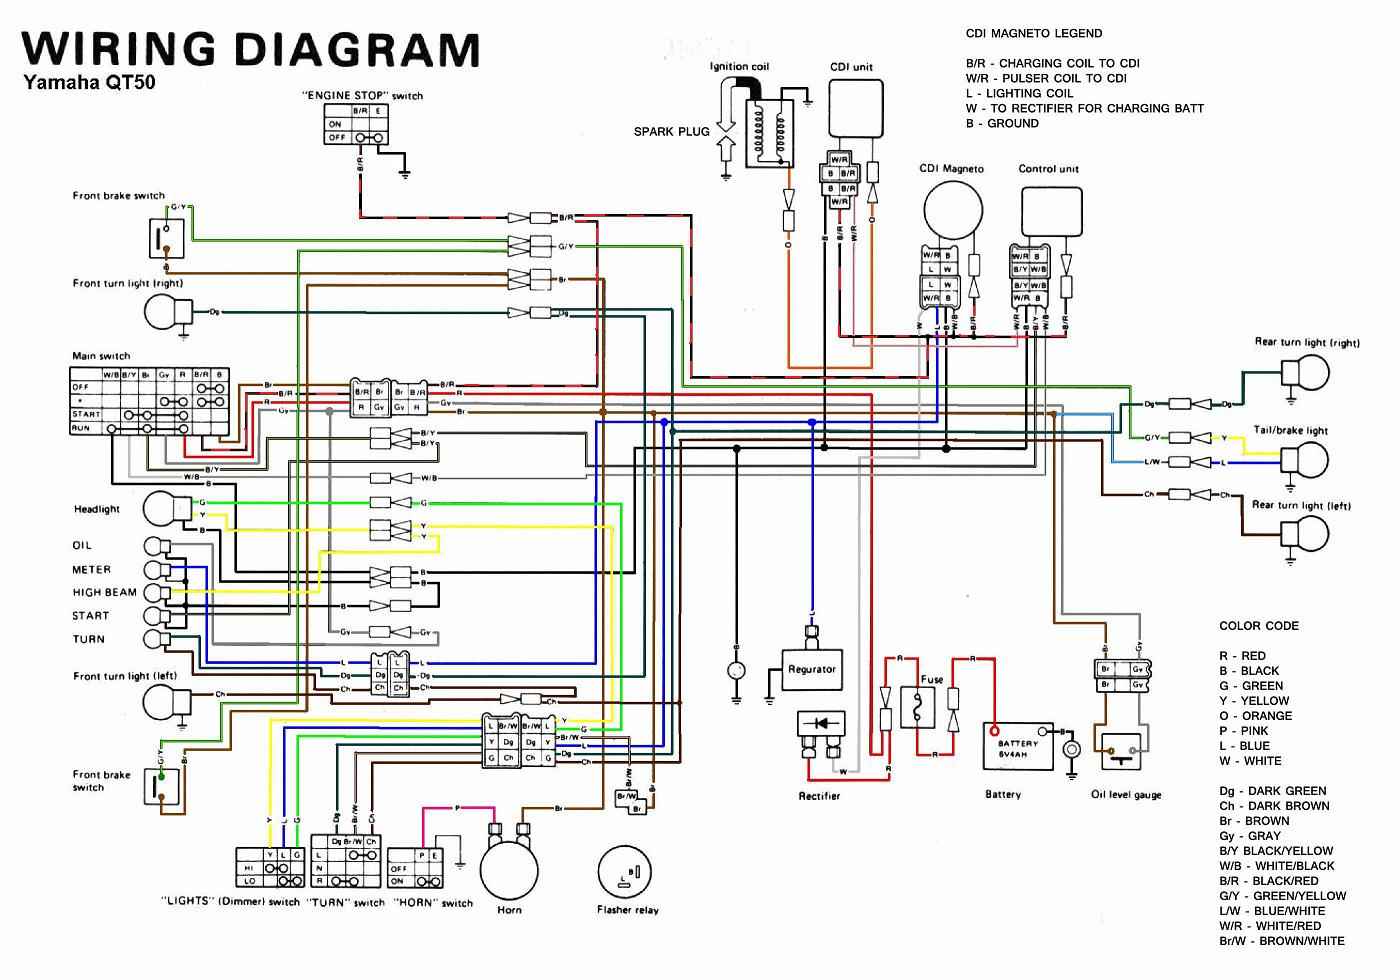 1979 Rd400 Wiring Diagram Explained Diagrams Xs1100 Free Picture Schematic Yamaha Download Yz426f